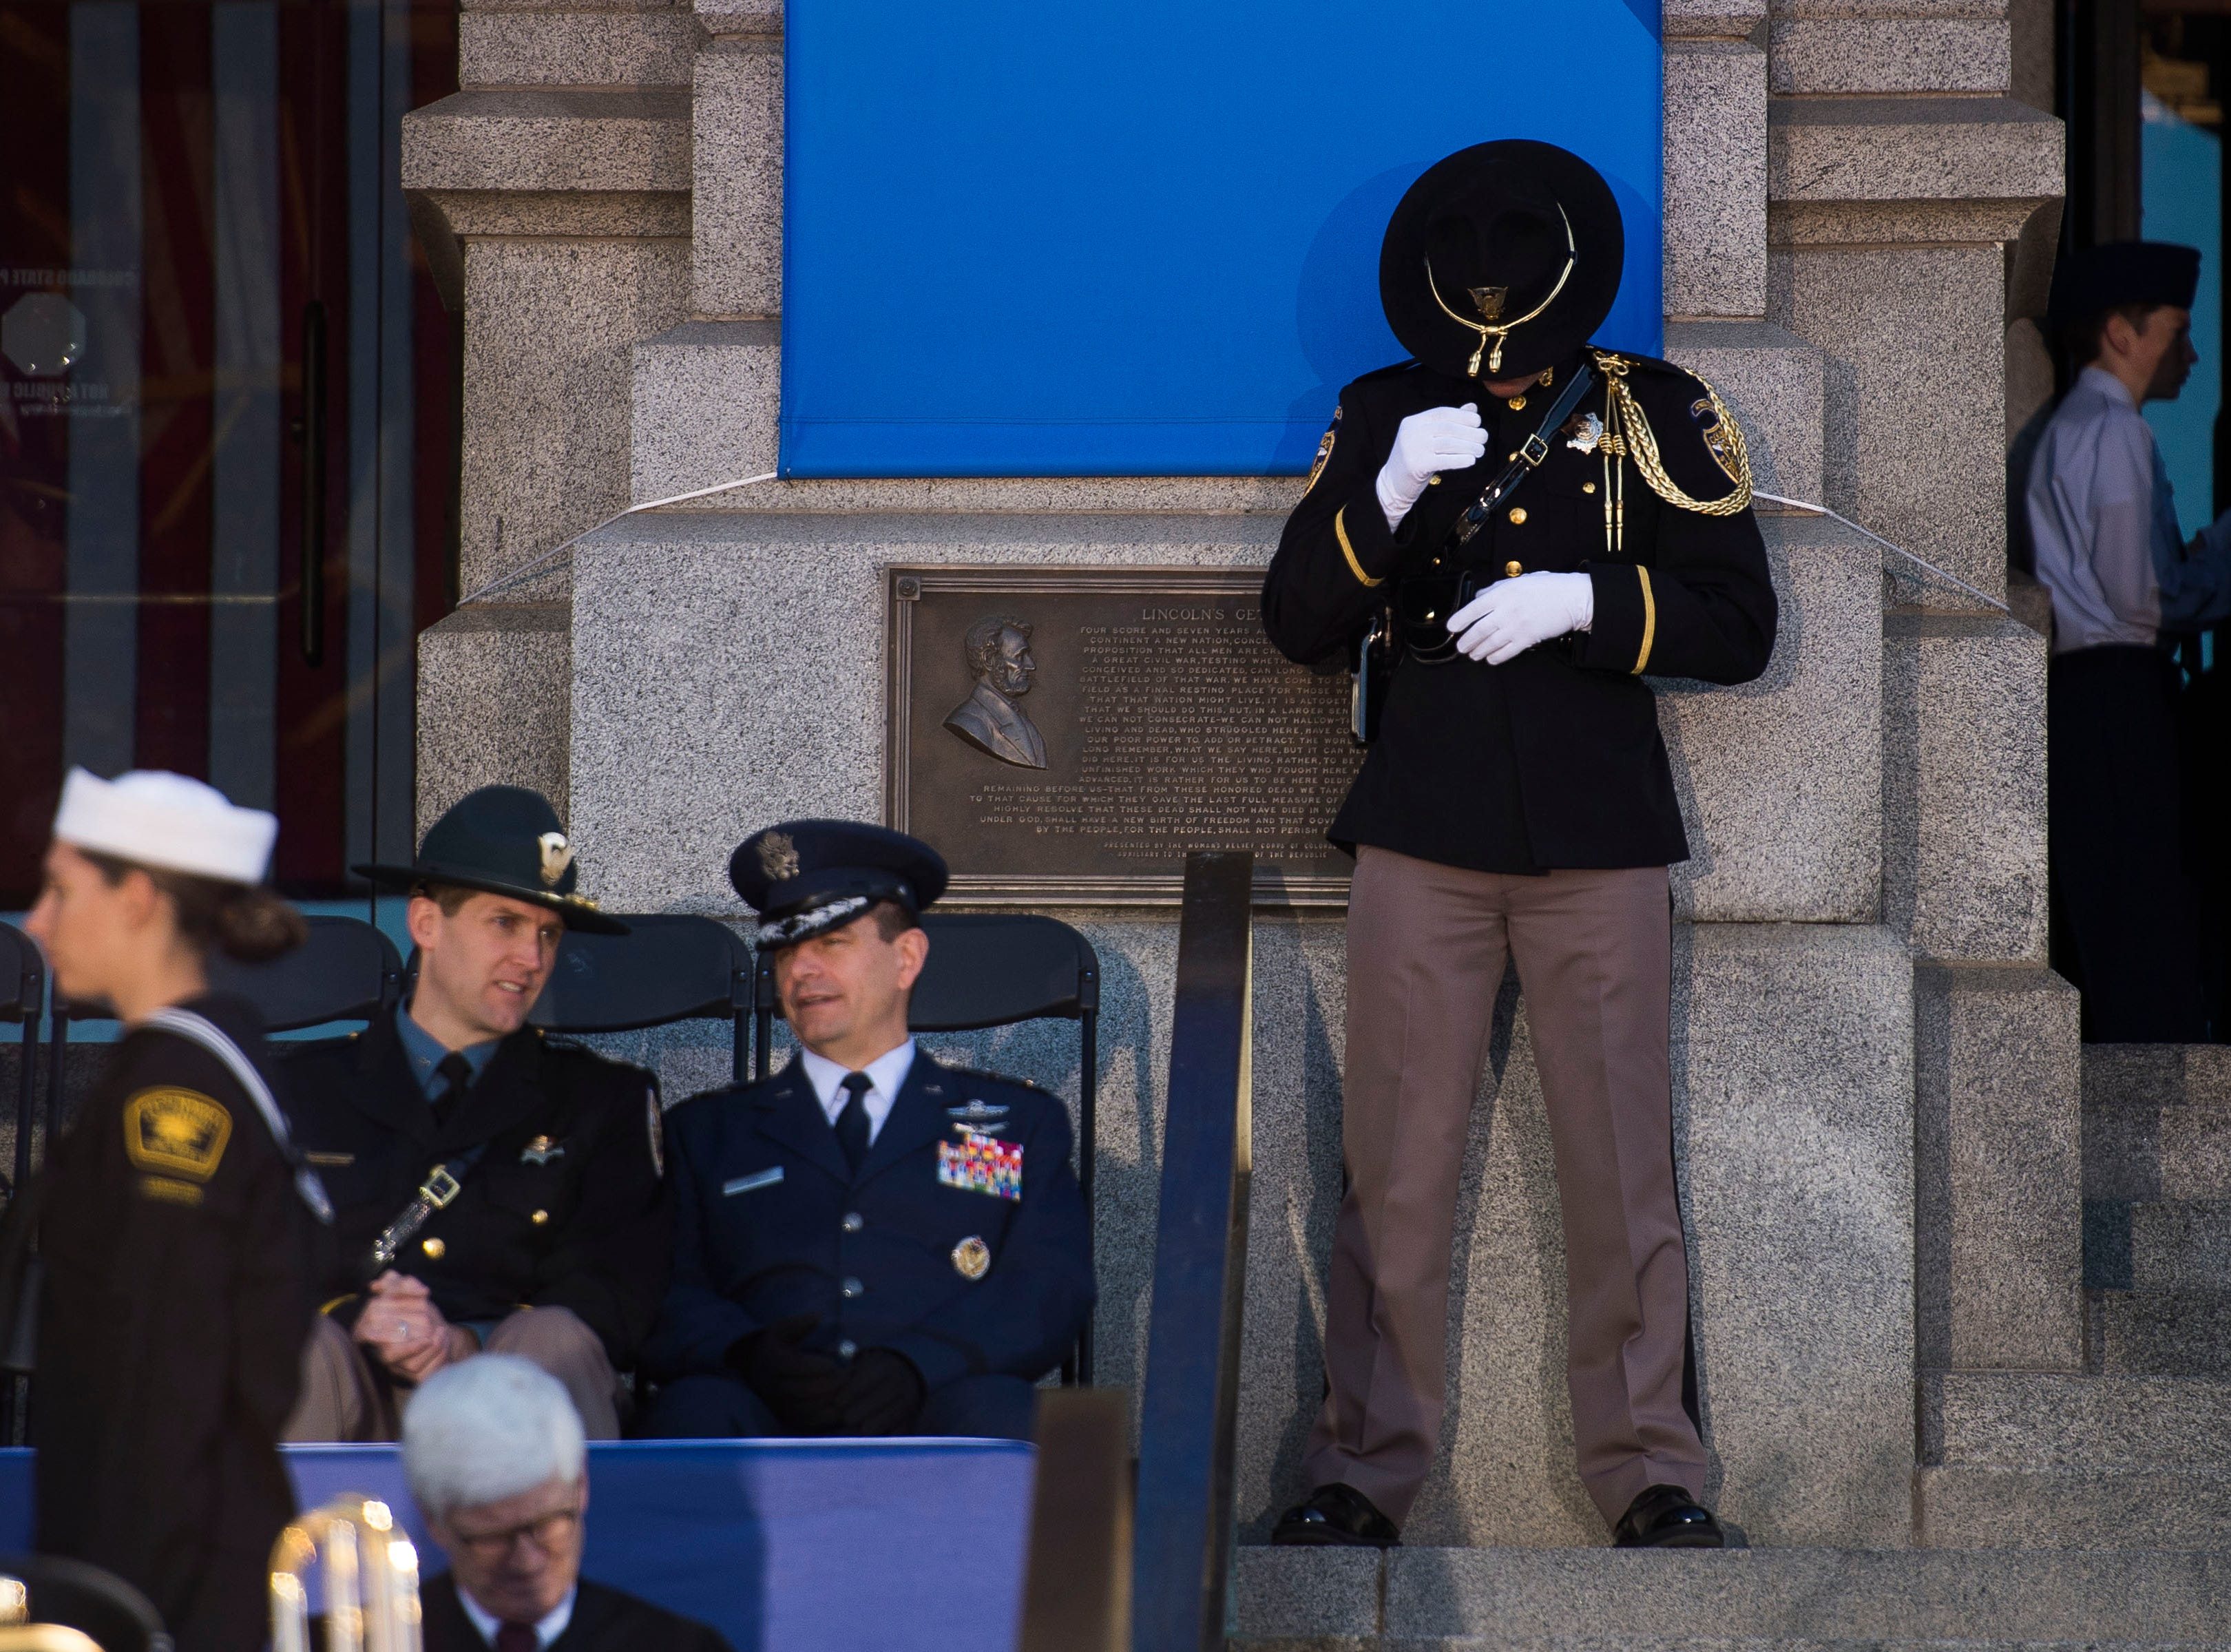 A Colorado State patrolman straitens his hat during the inauguration of Colorado State Governor Jared Polis on Tuesday, Jan. 8, 2019, in front of the Colorado State Capital building in Denver, Colo.